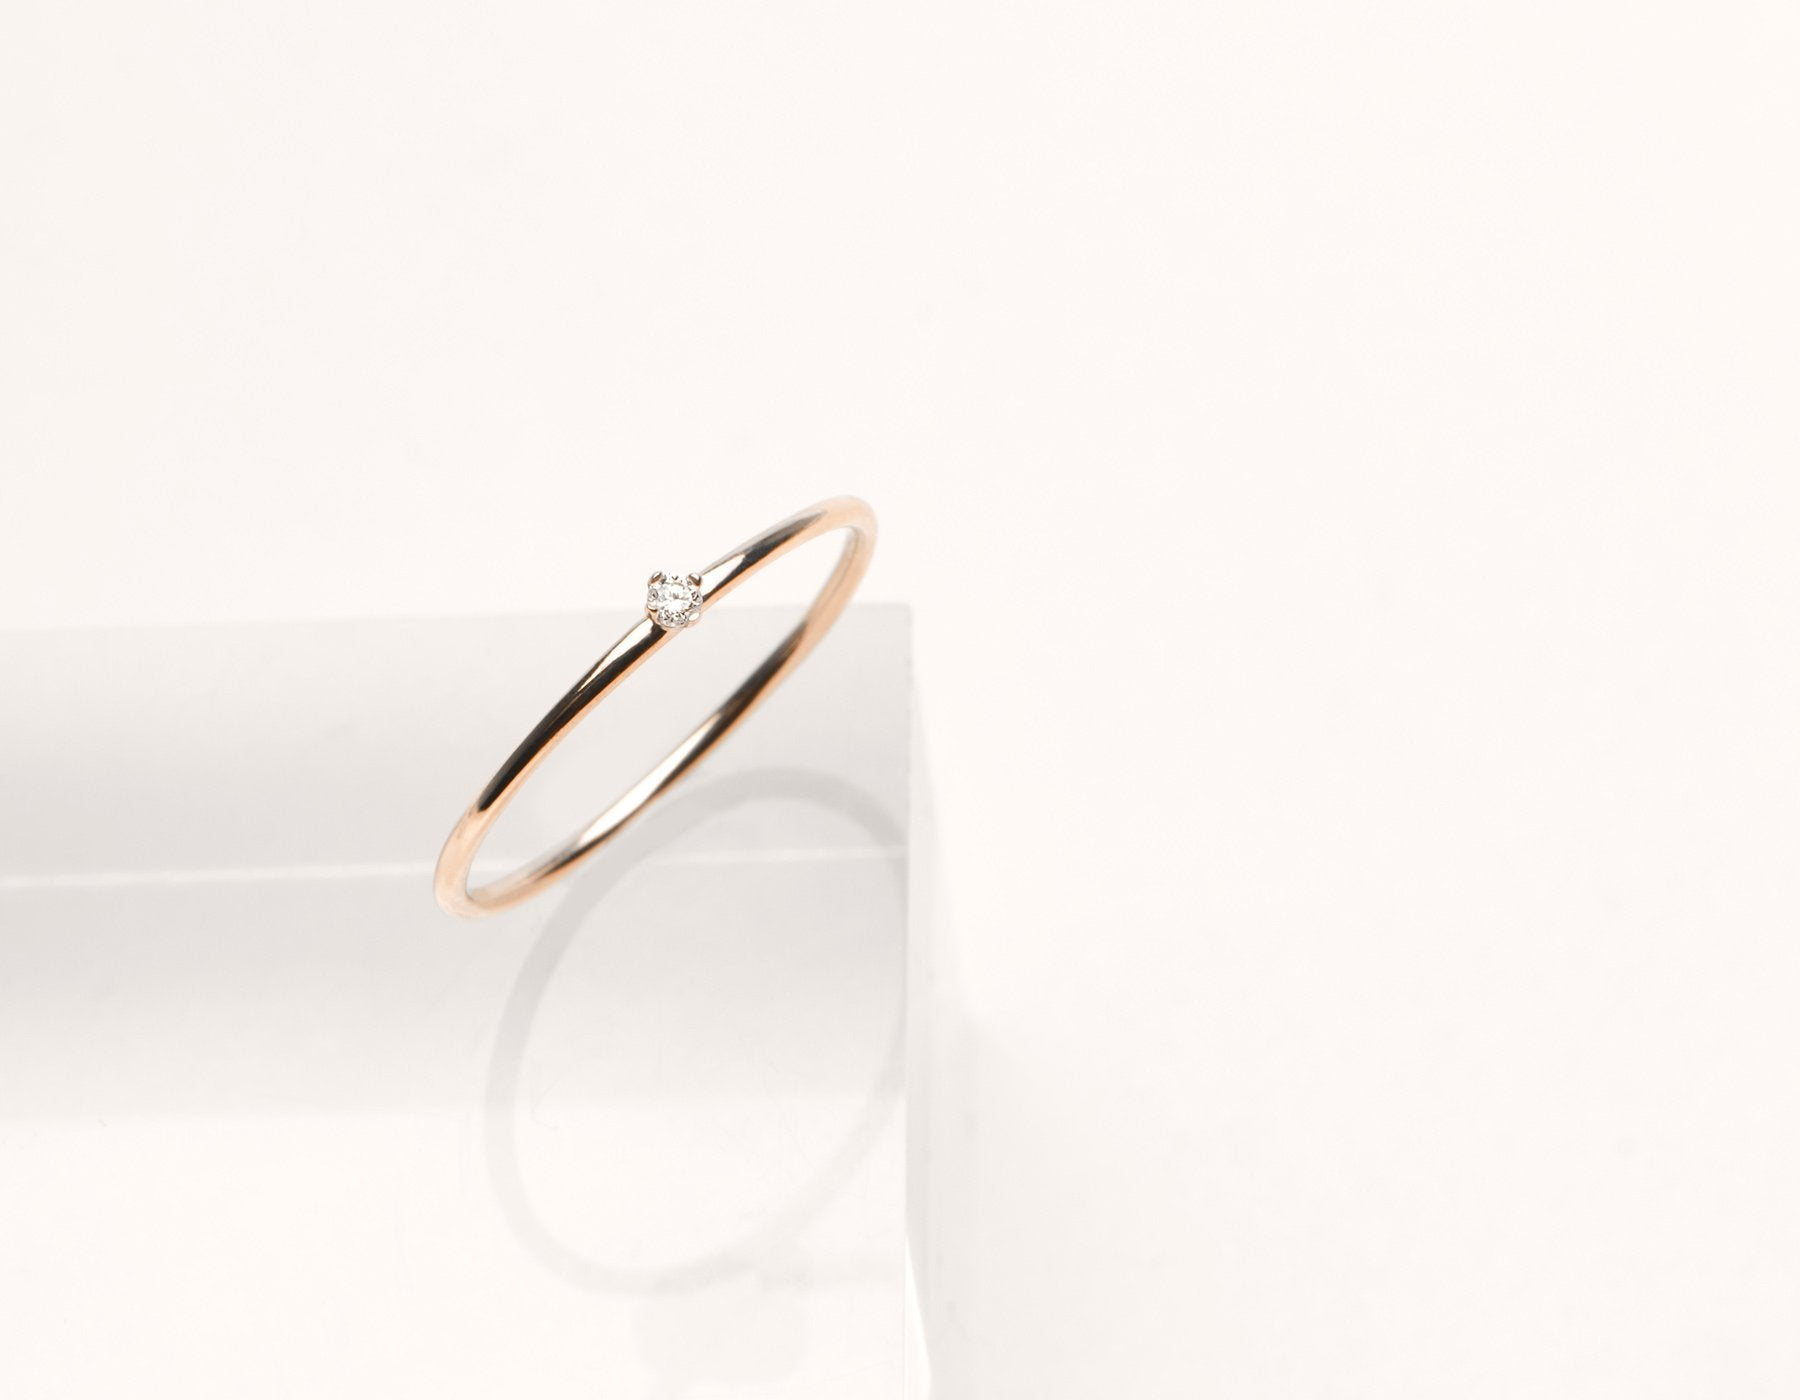 Modern minimalist Round White Diamond stacker ring Vrai & Oro 14k solid gold, 14K Rose Gold